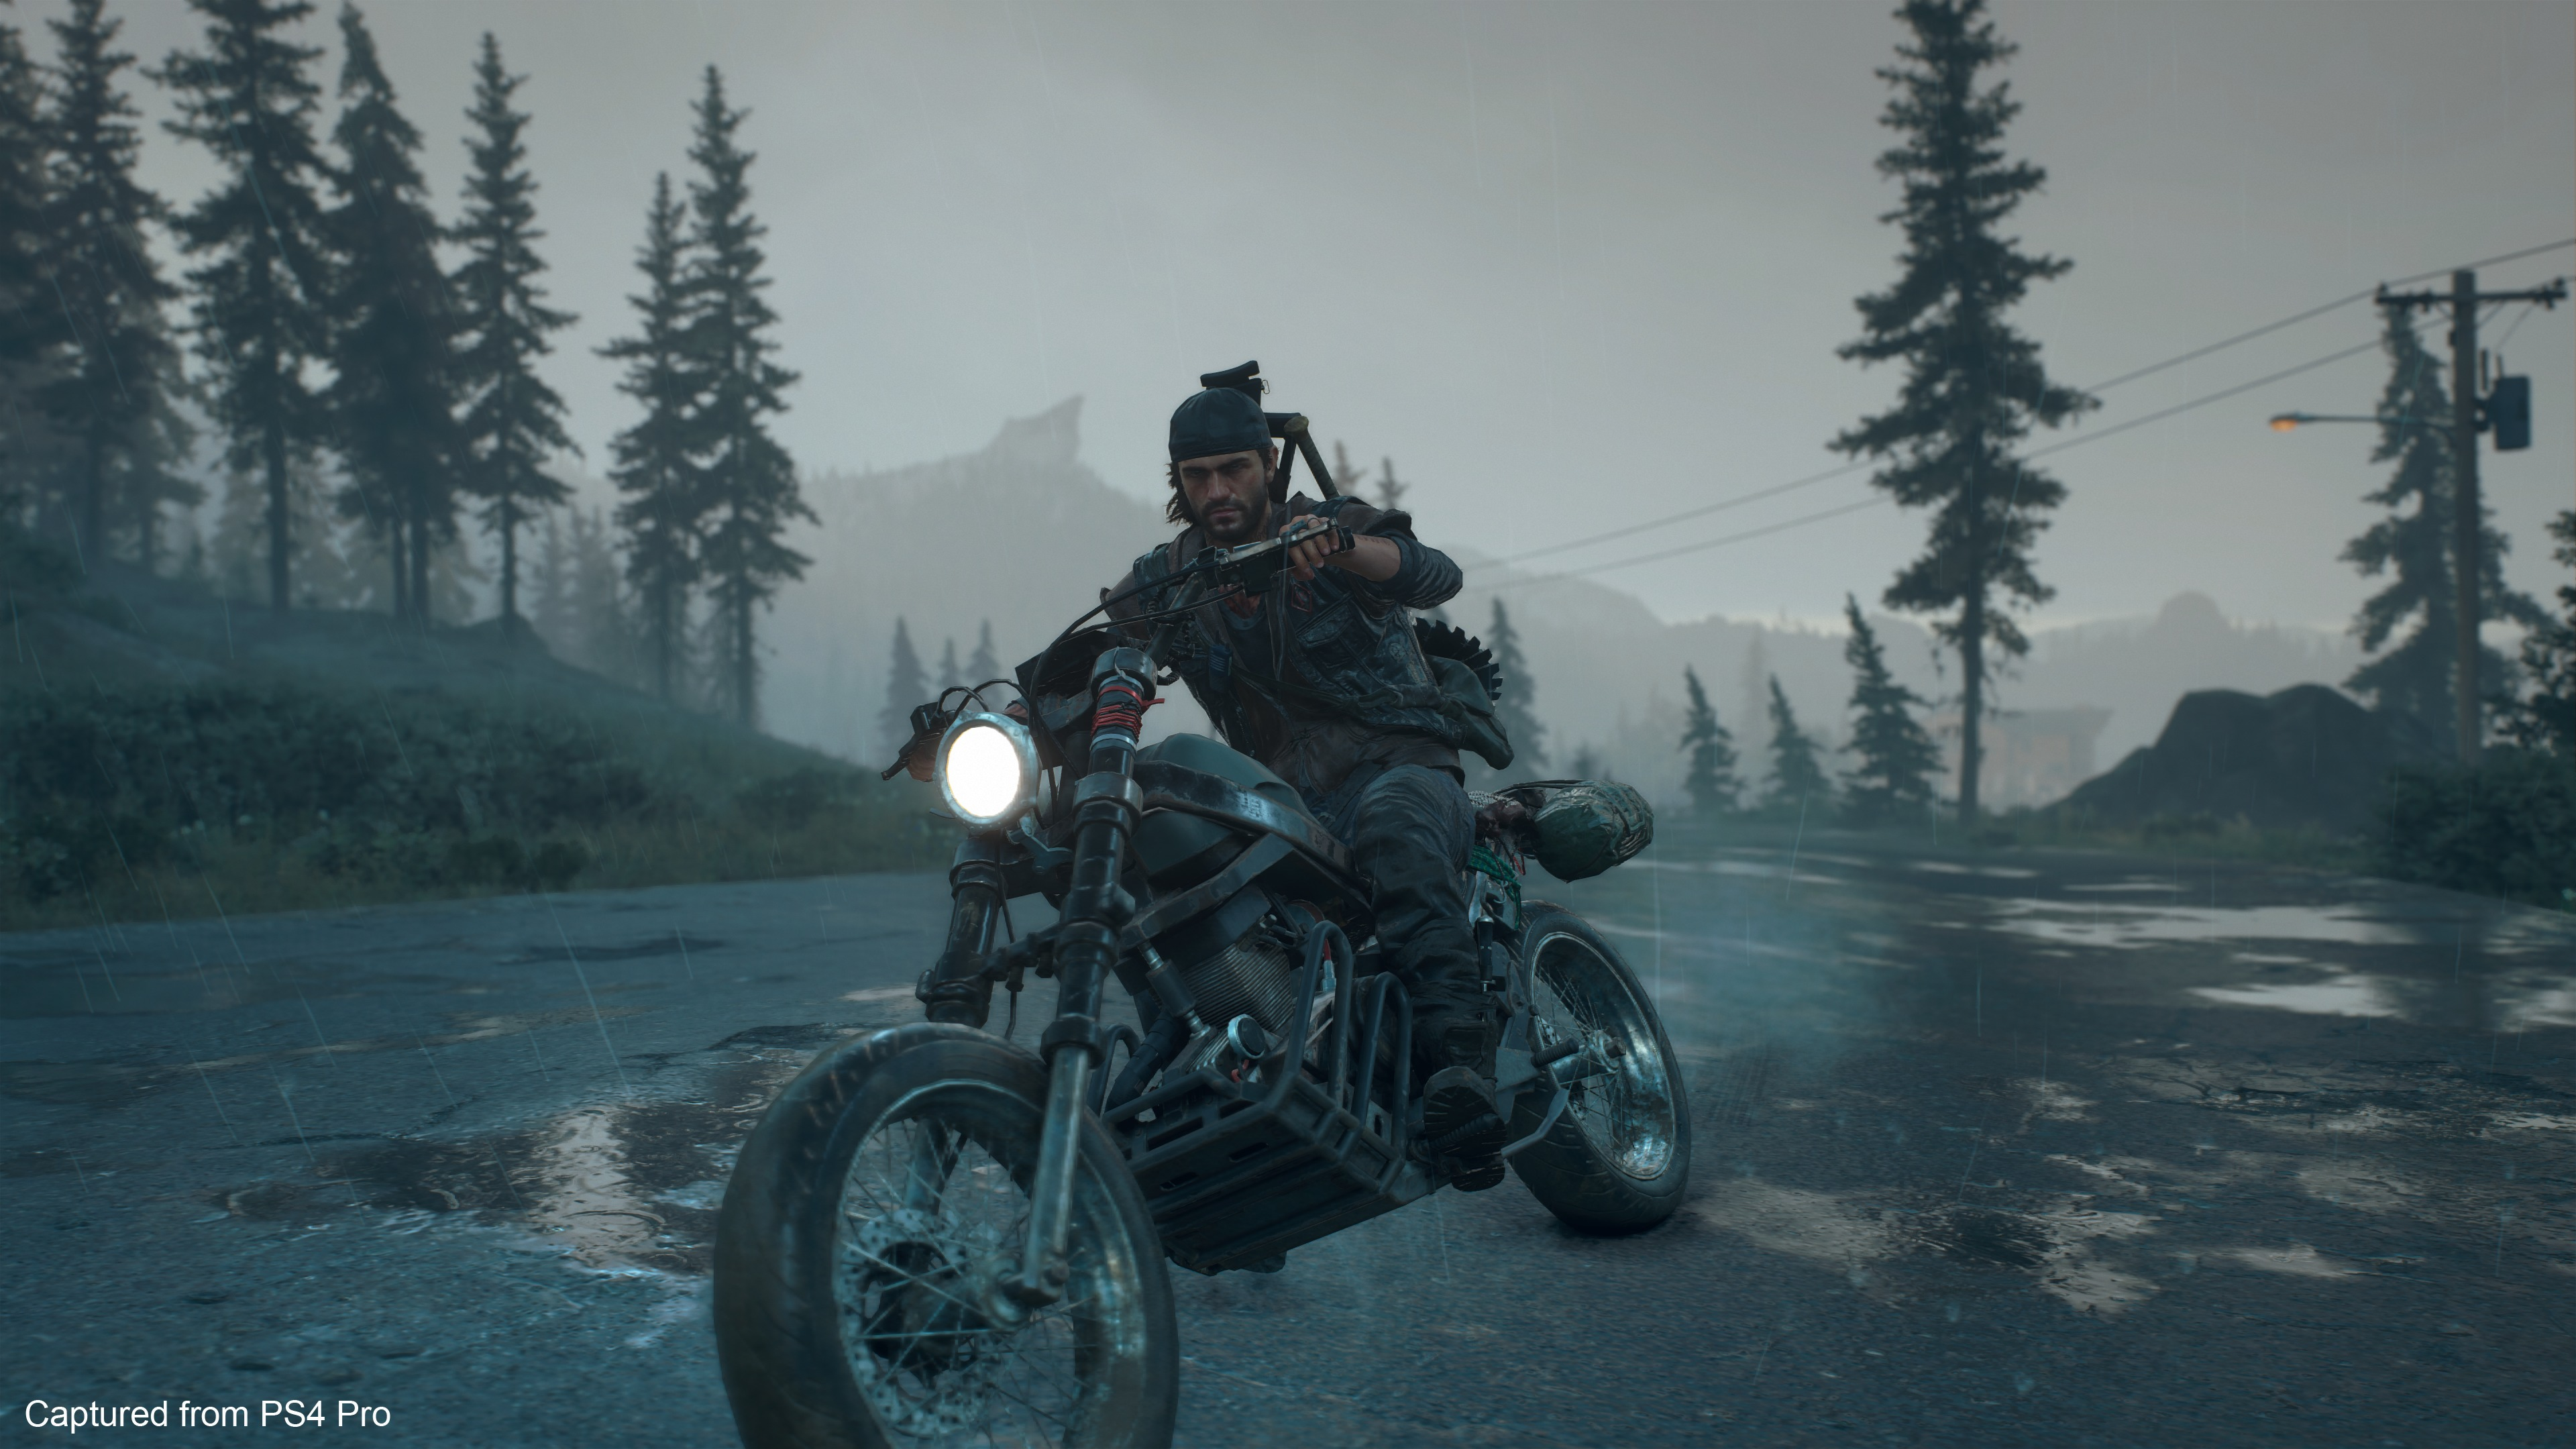 Preview Days Gone - Deacon sur sa moto